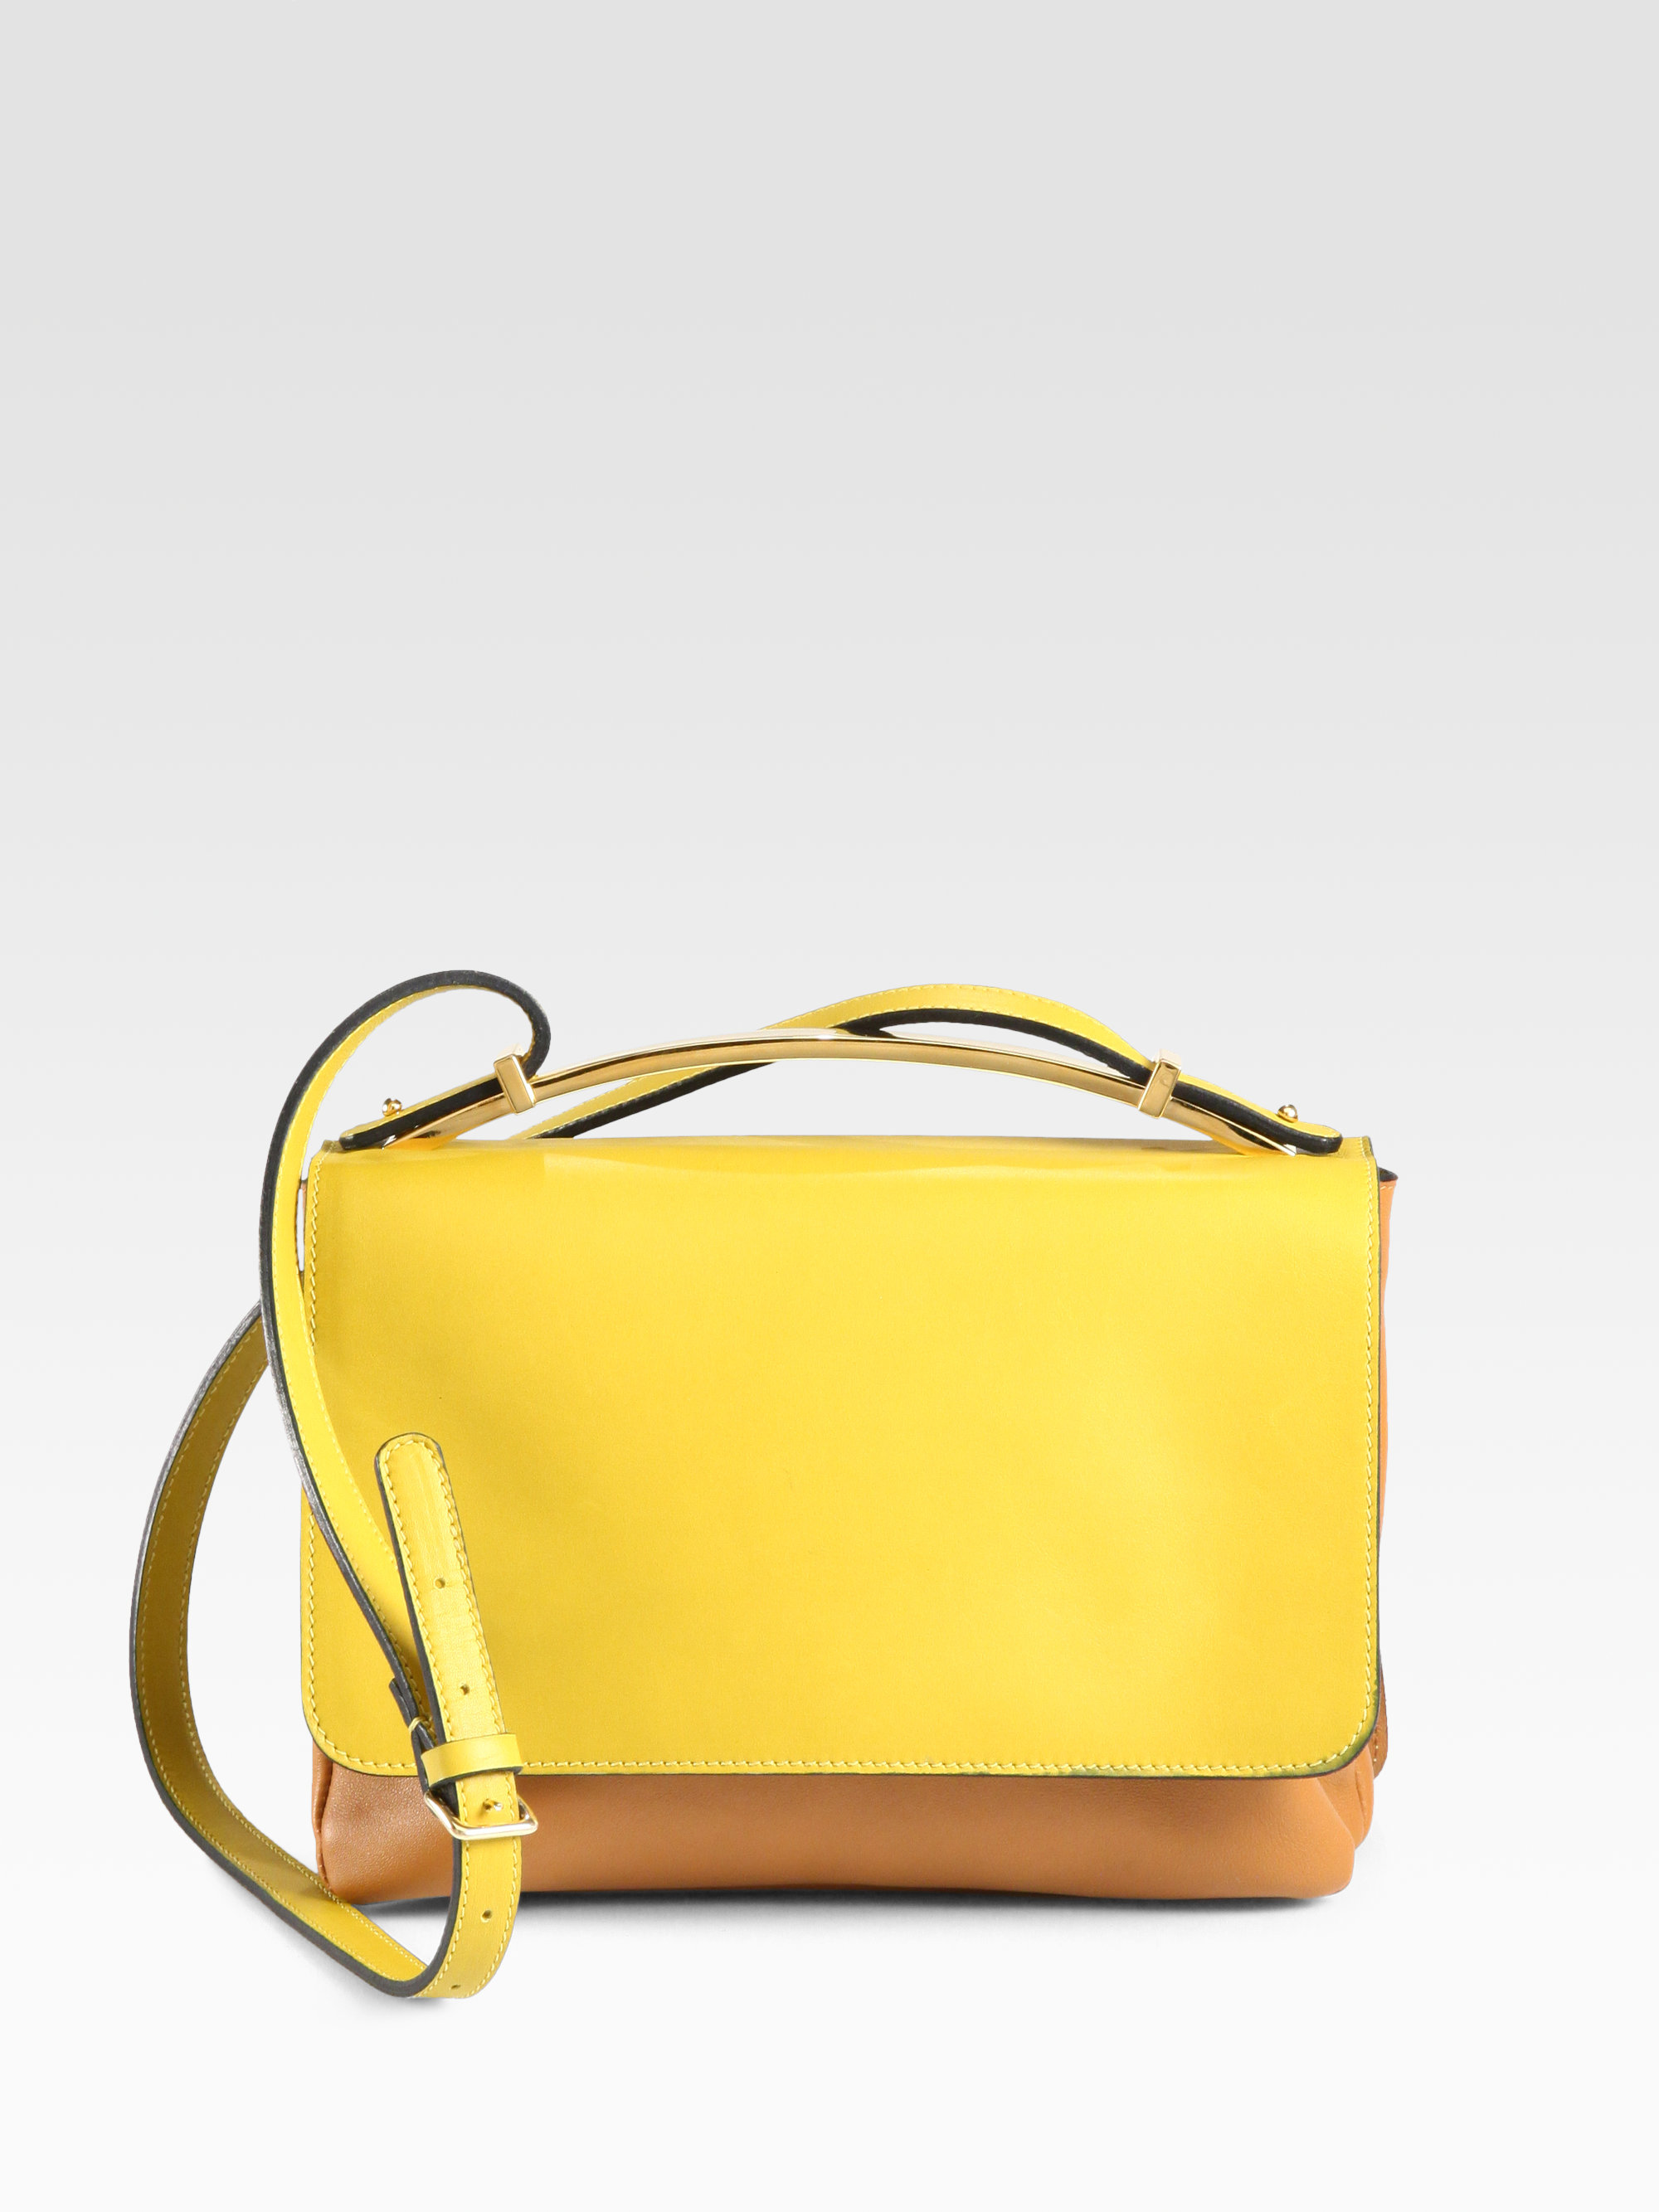 Marni Small Bicolor Shoulder Bag in Yellow | Lyst